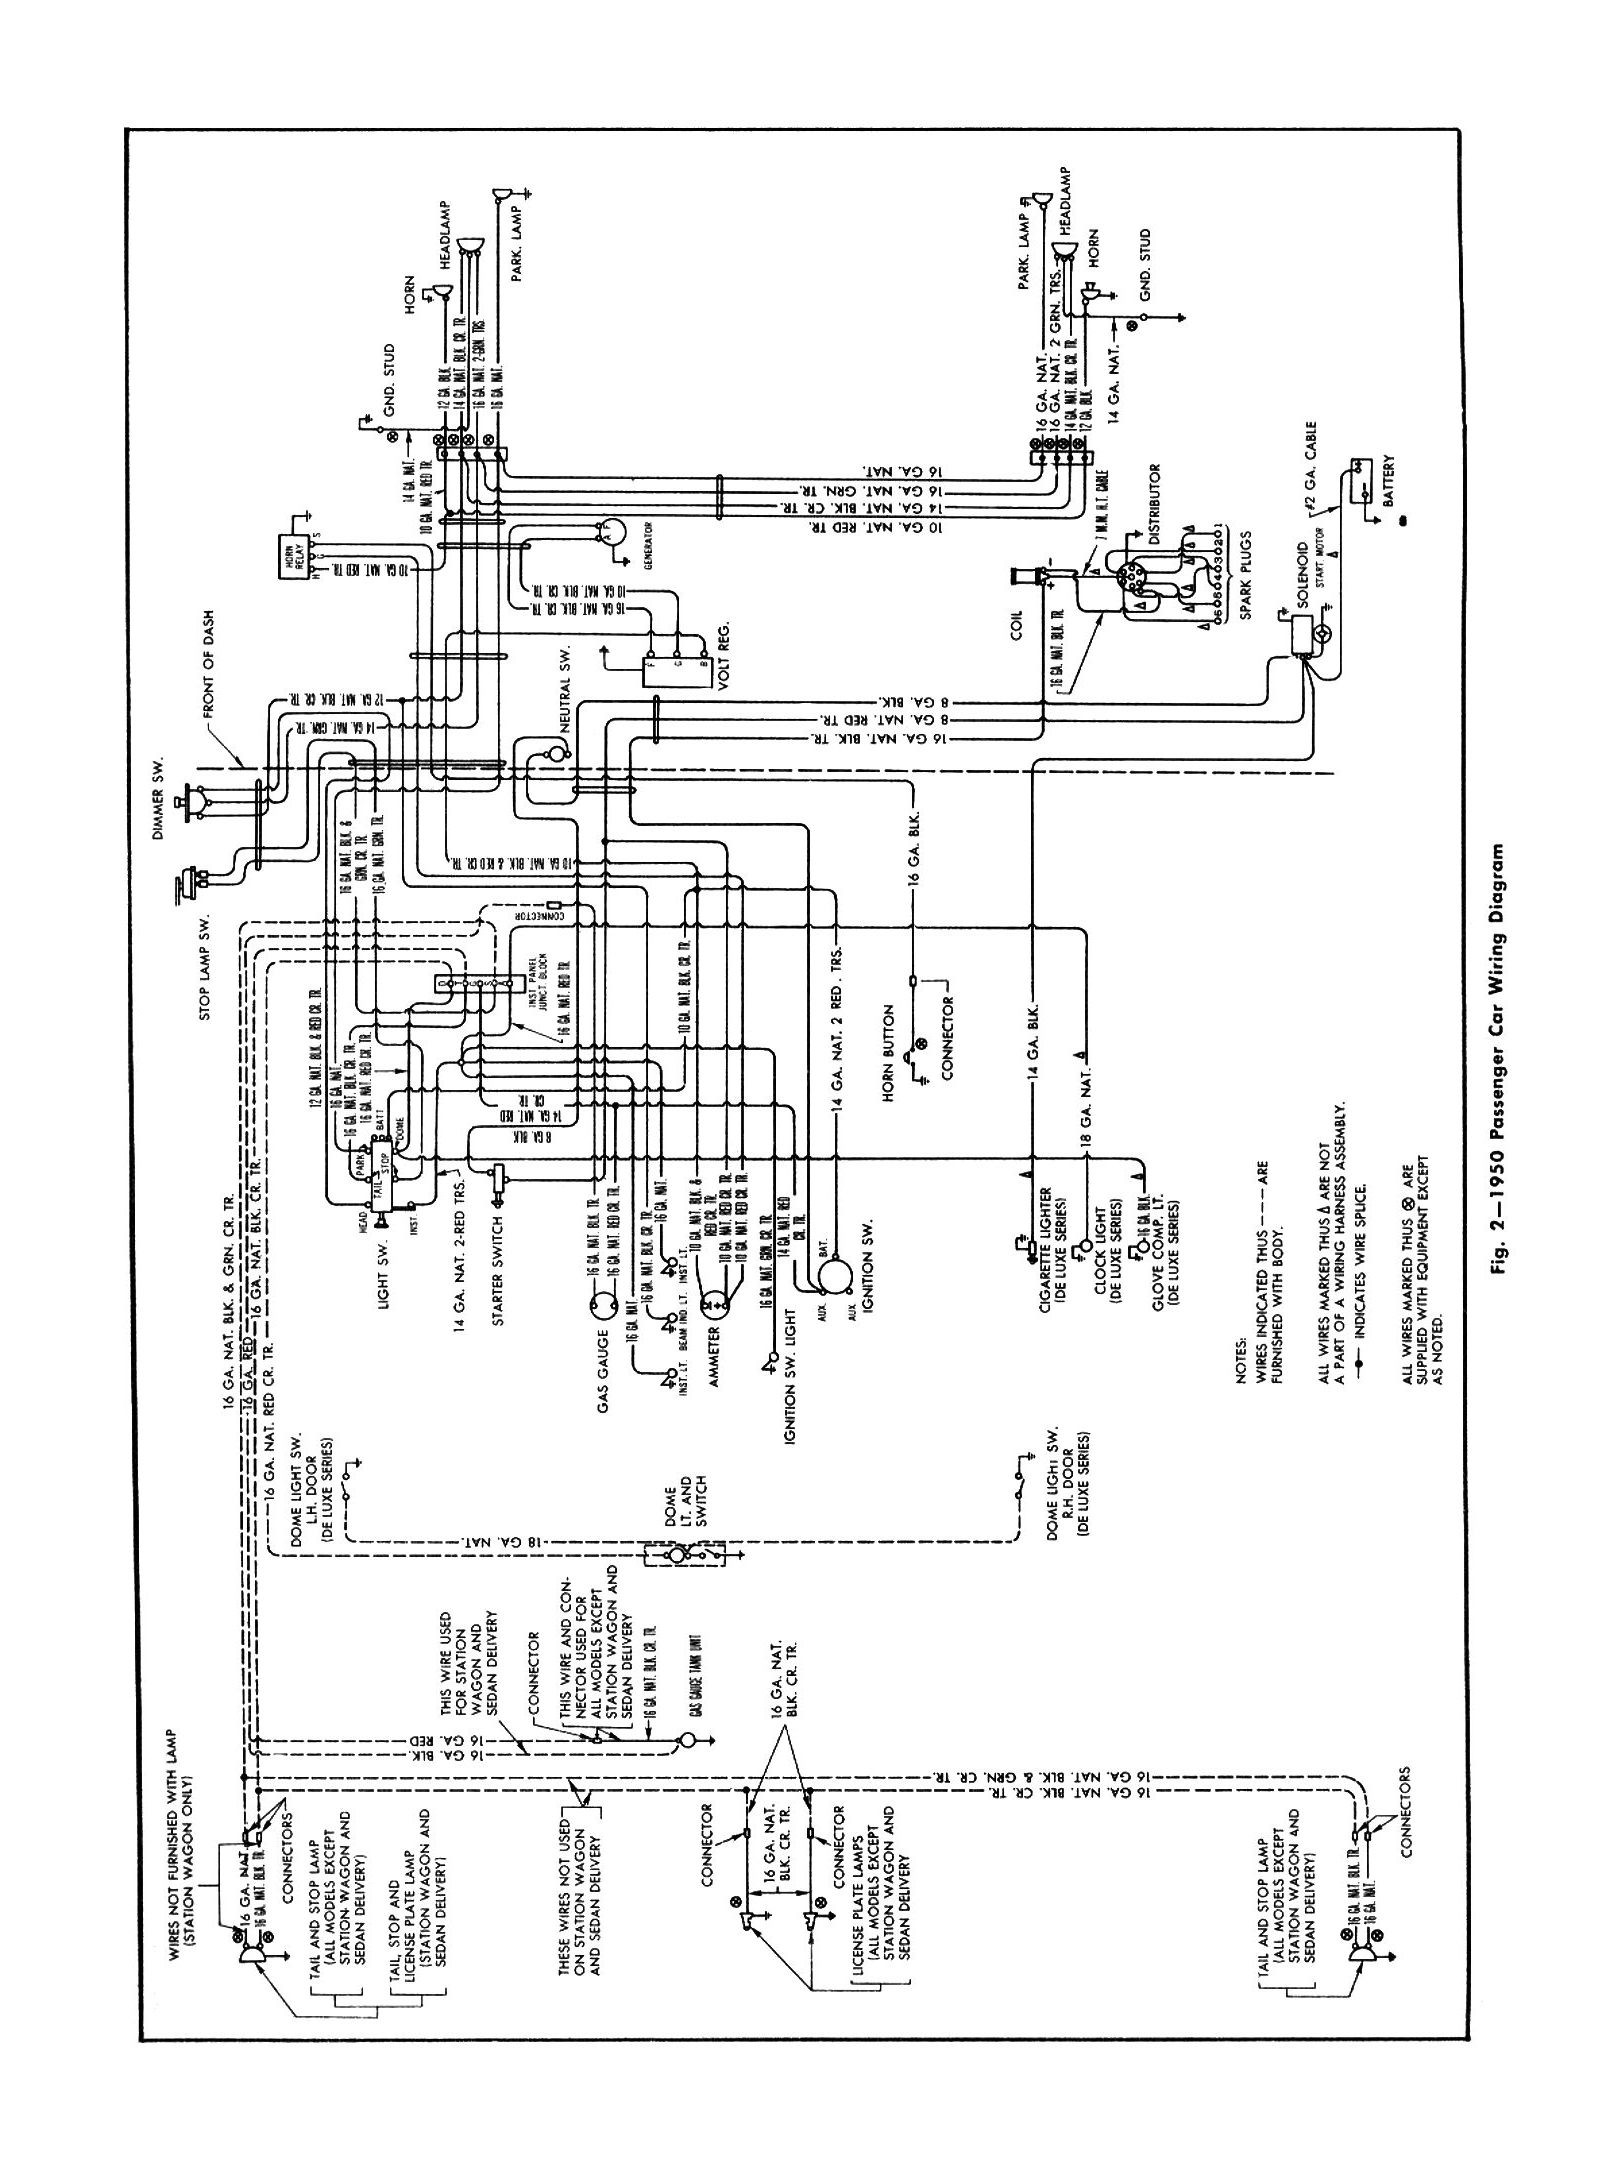 1949 lincoln wiring harness wiring diagram progresif